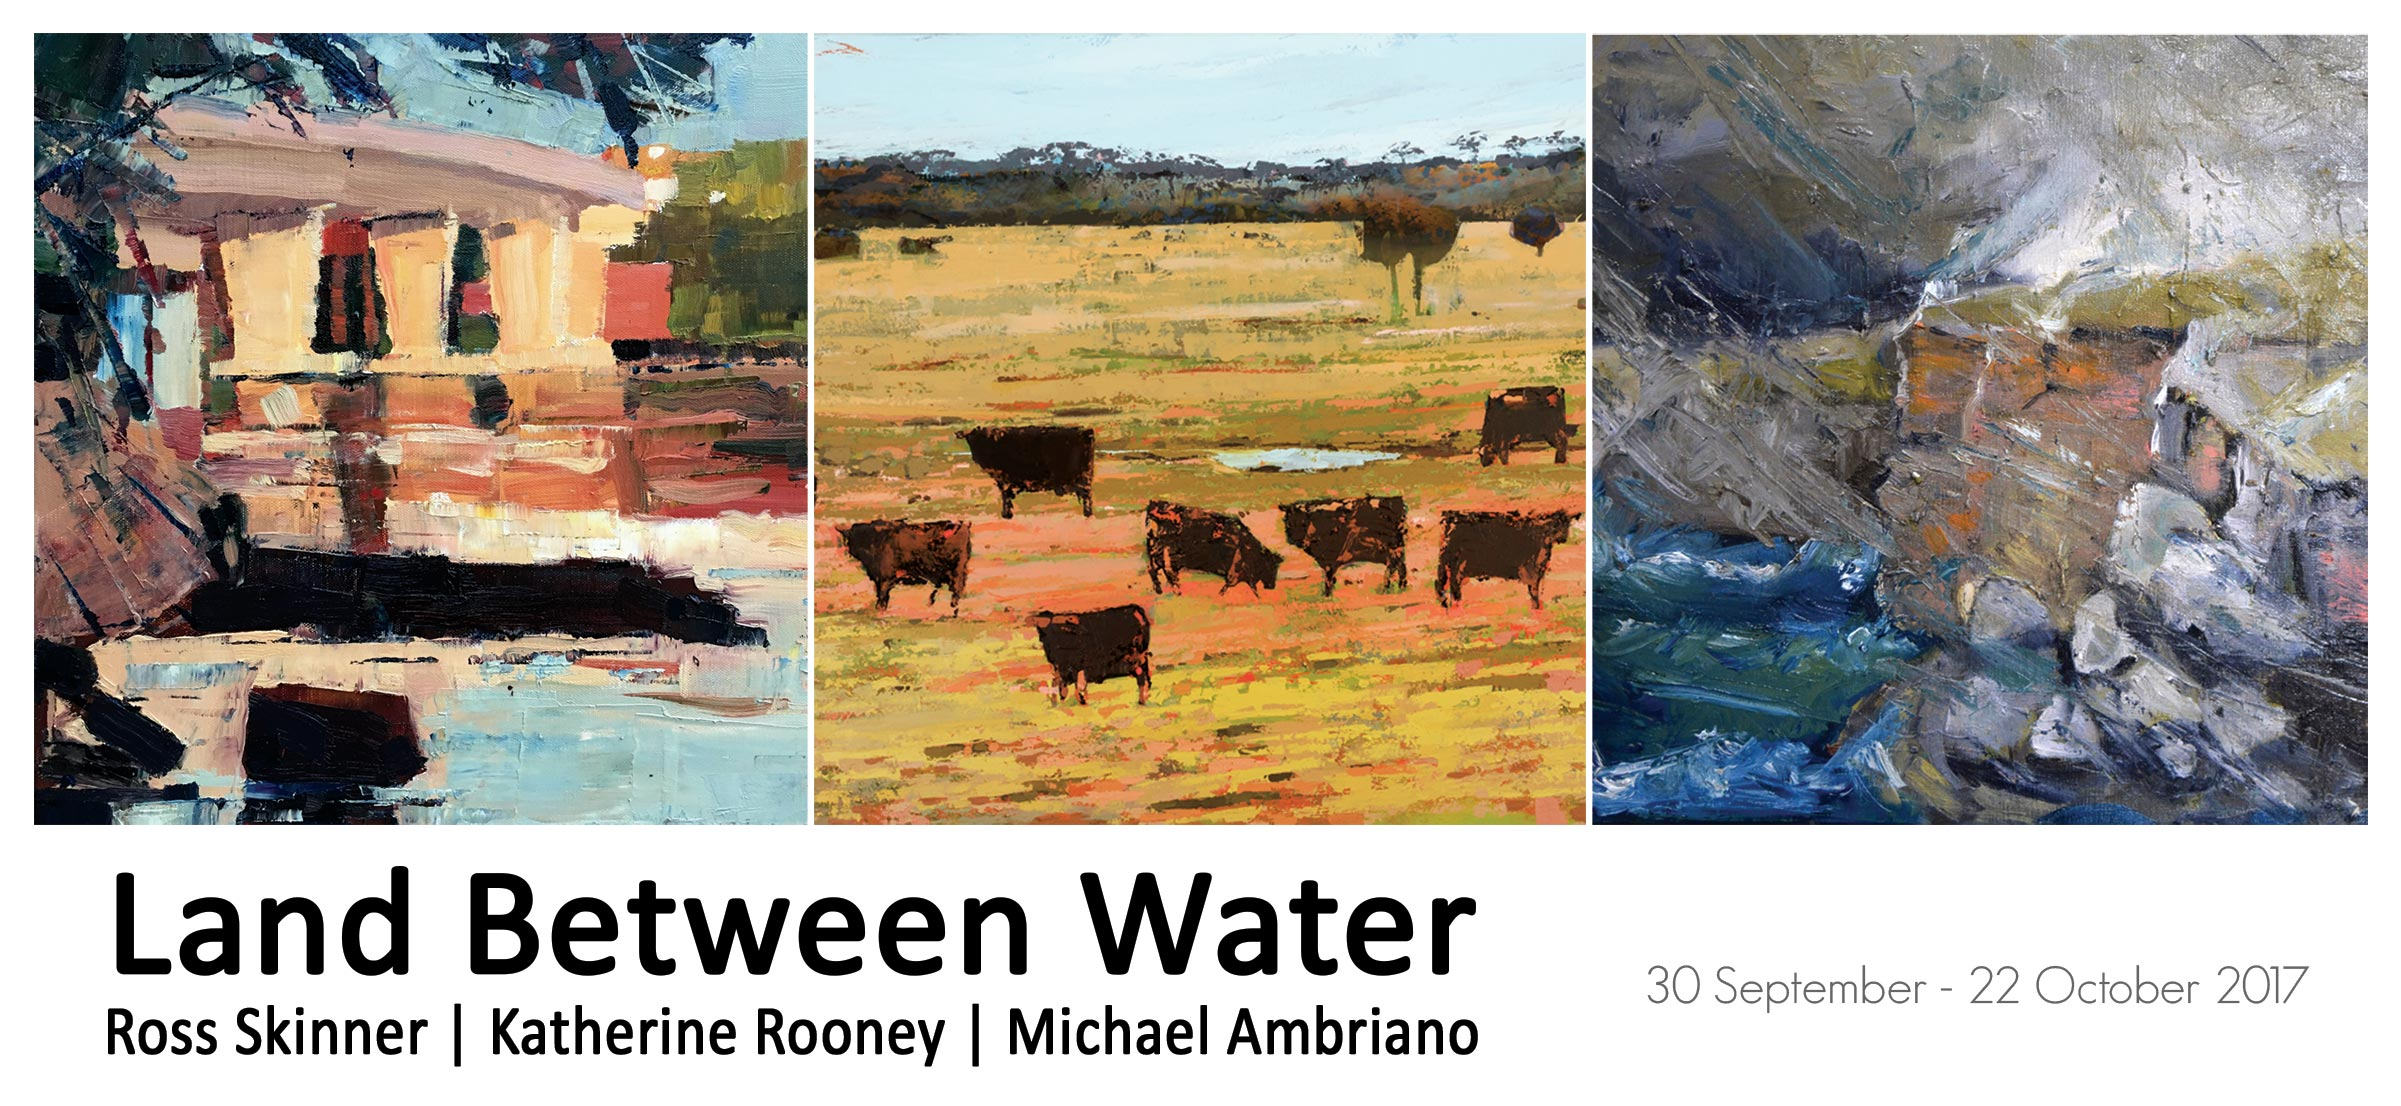 Land Between Water: Ross Skinner, Katherine Rooney, Michael Ambriano. Artsite Galleries, Sydney, Sydney 30 September - 22 October 2017